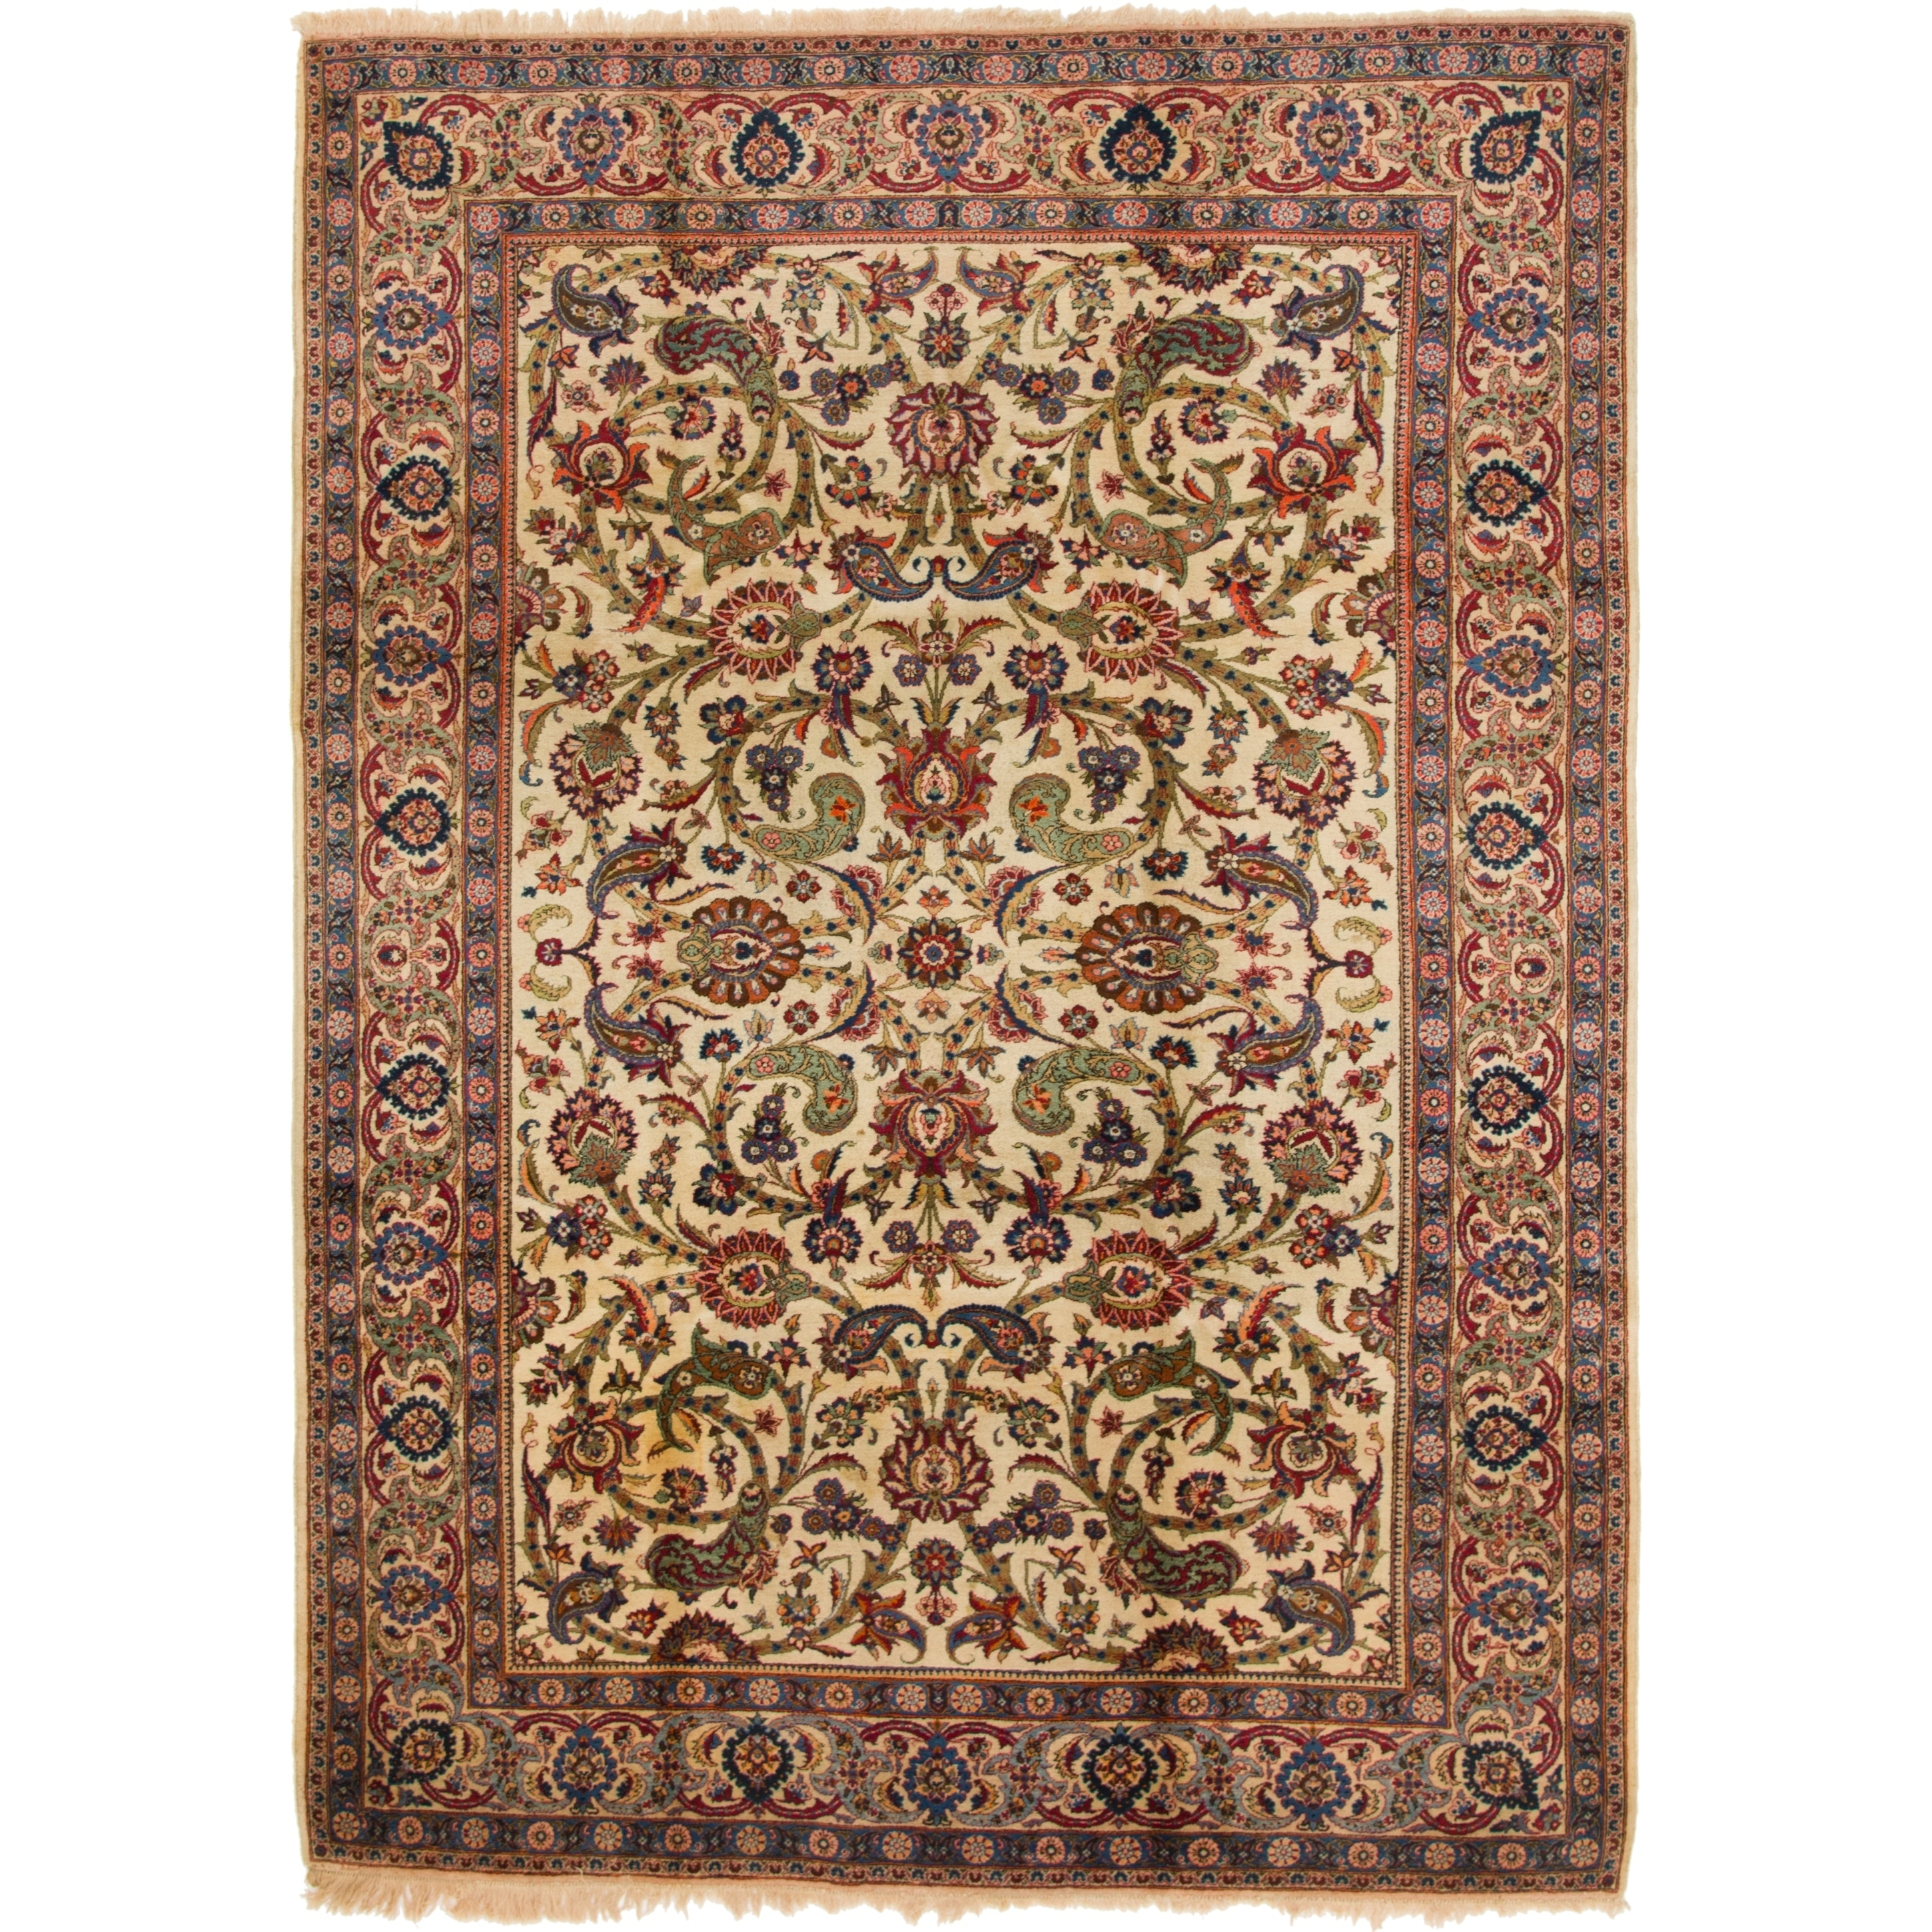 Hand Knotted Kashan Antique Wool Area Rug - 7 3 x 10 5 (Ivory - 7 3 x 10 5)